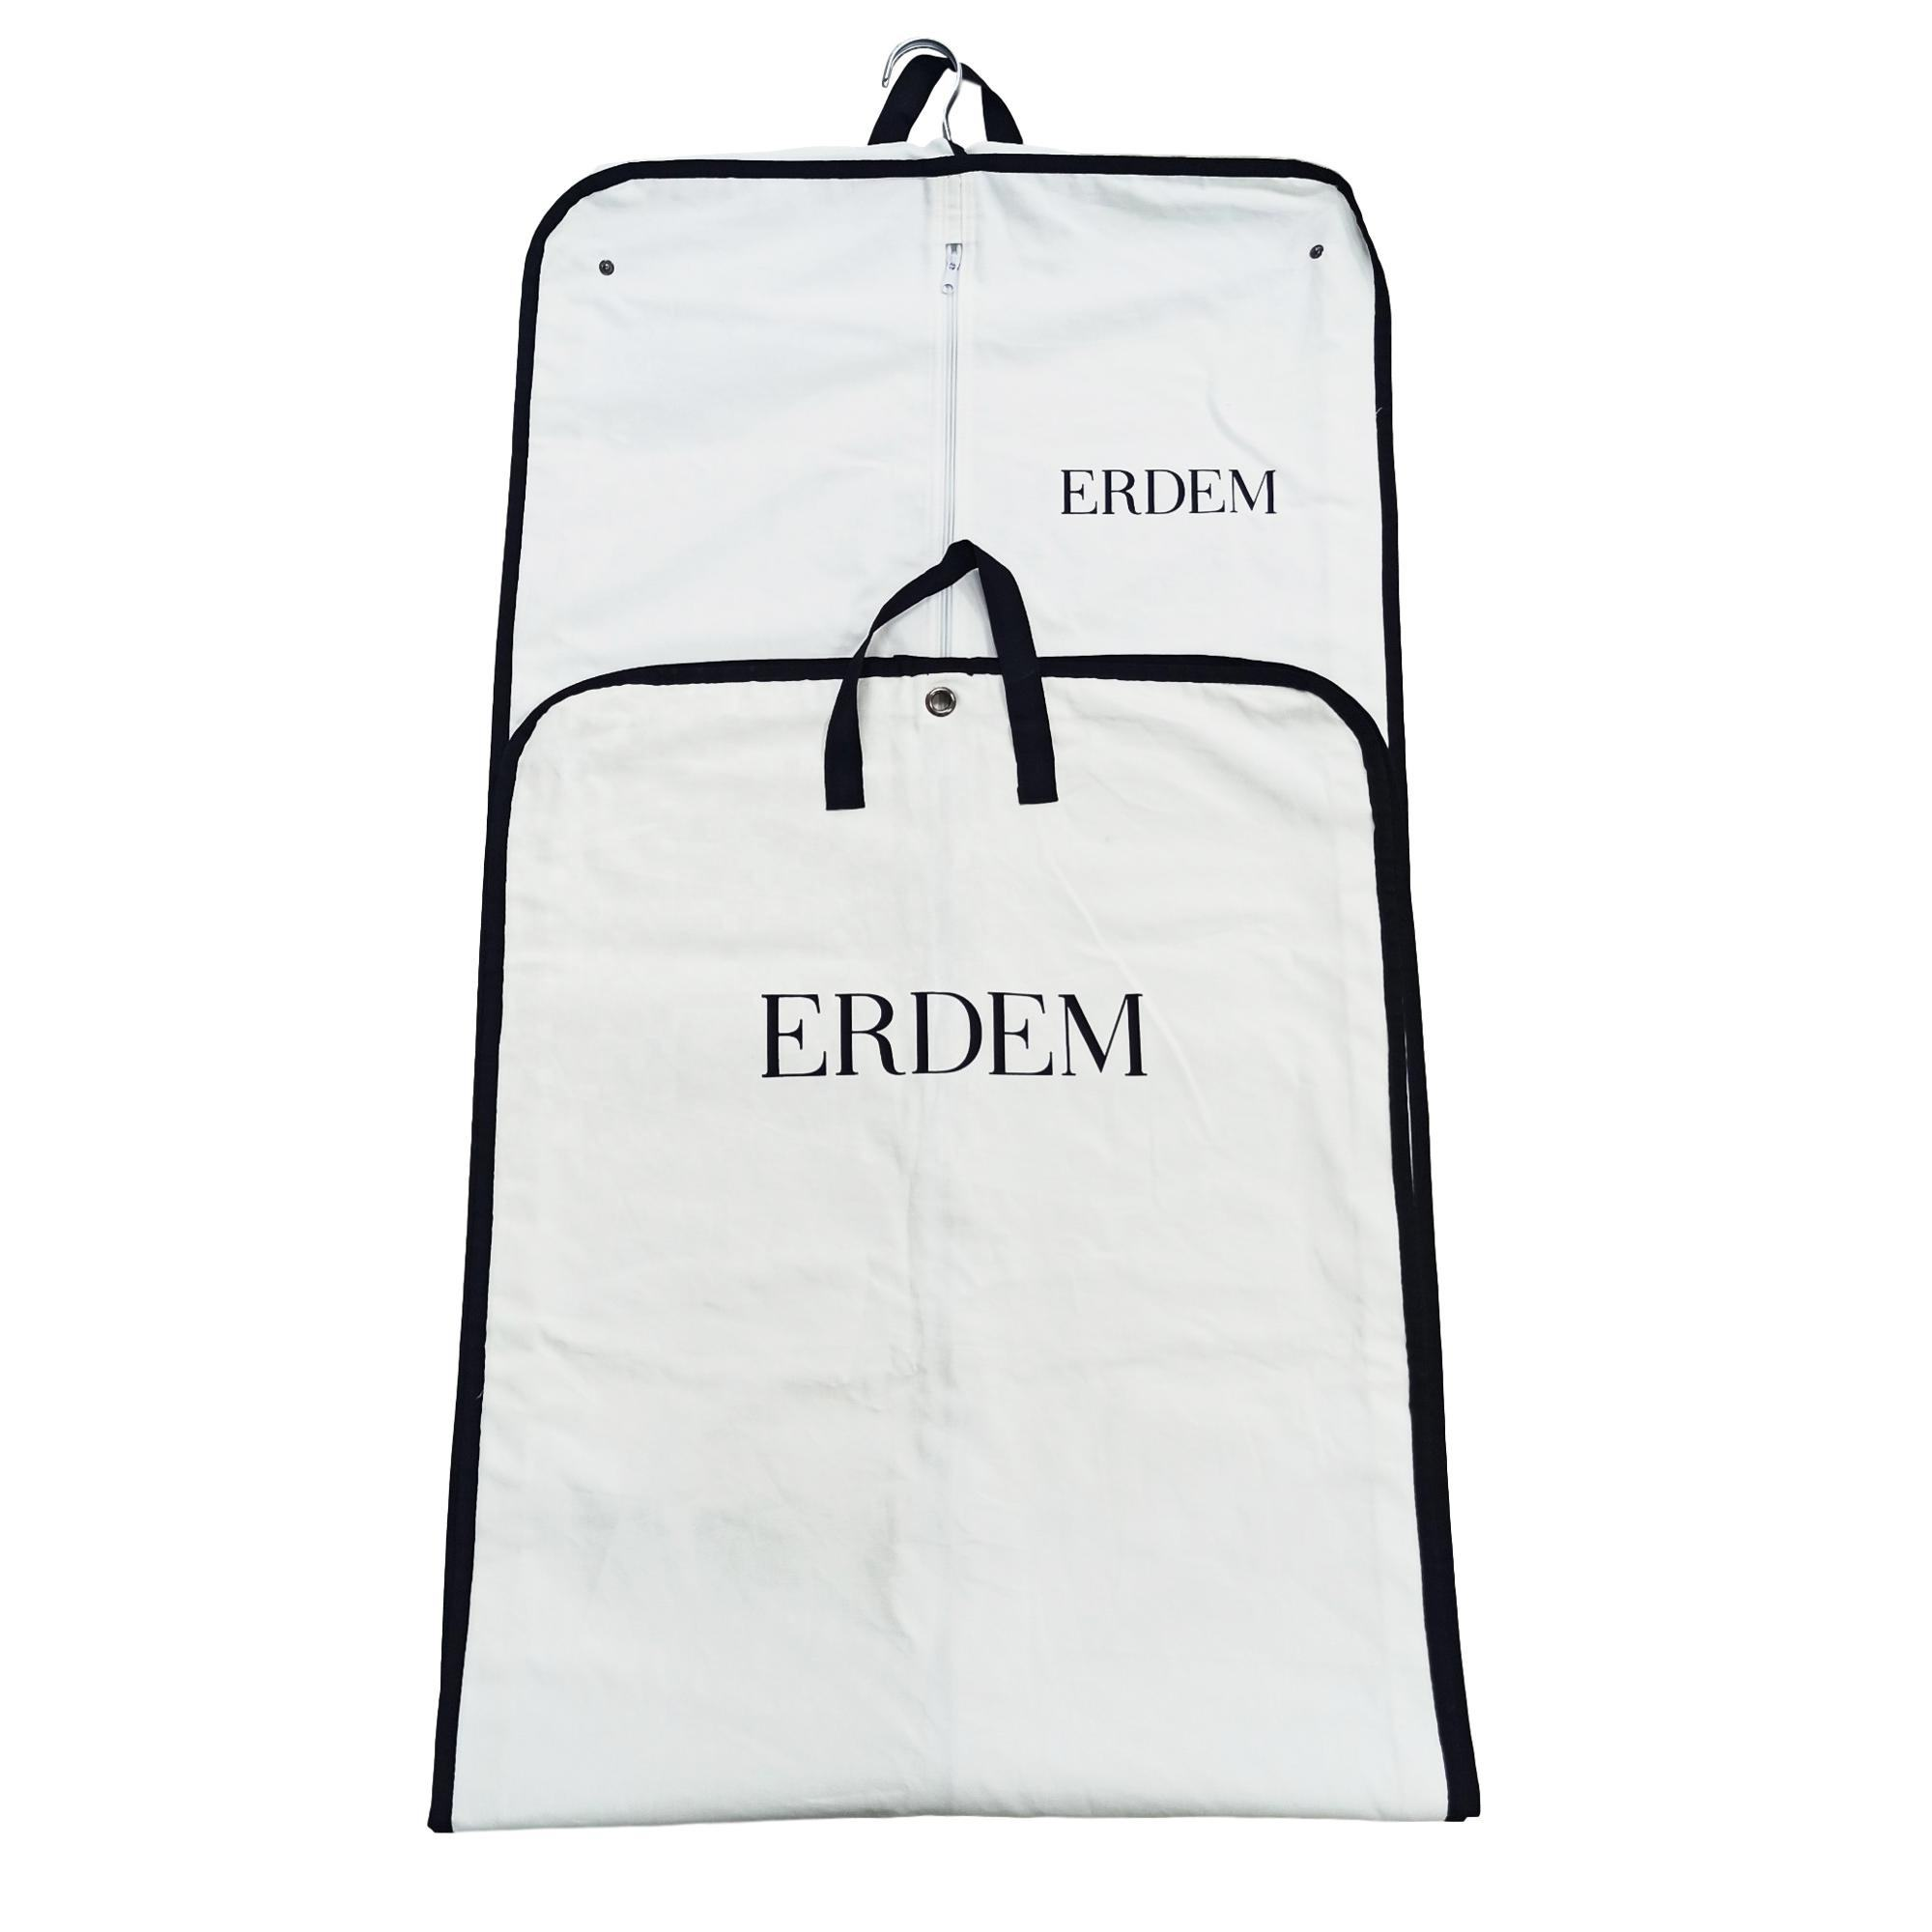 High quality custom made cotton garment bag wedding dress garment bag